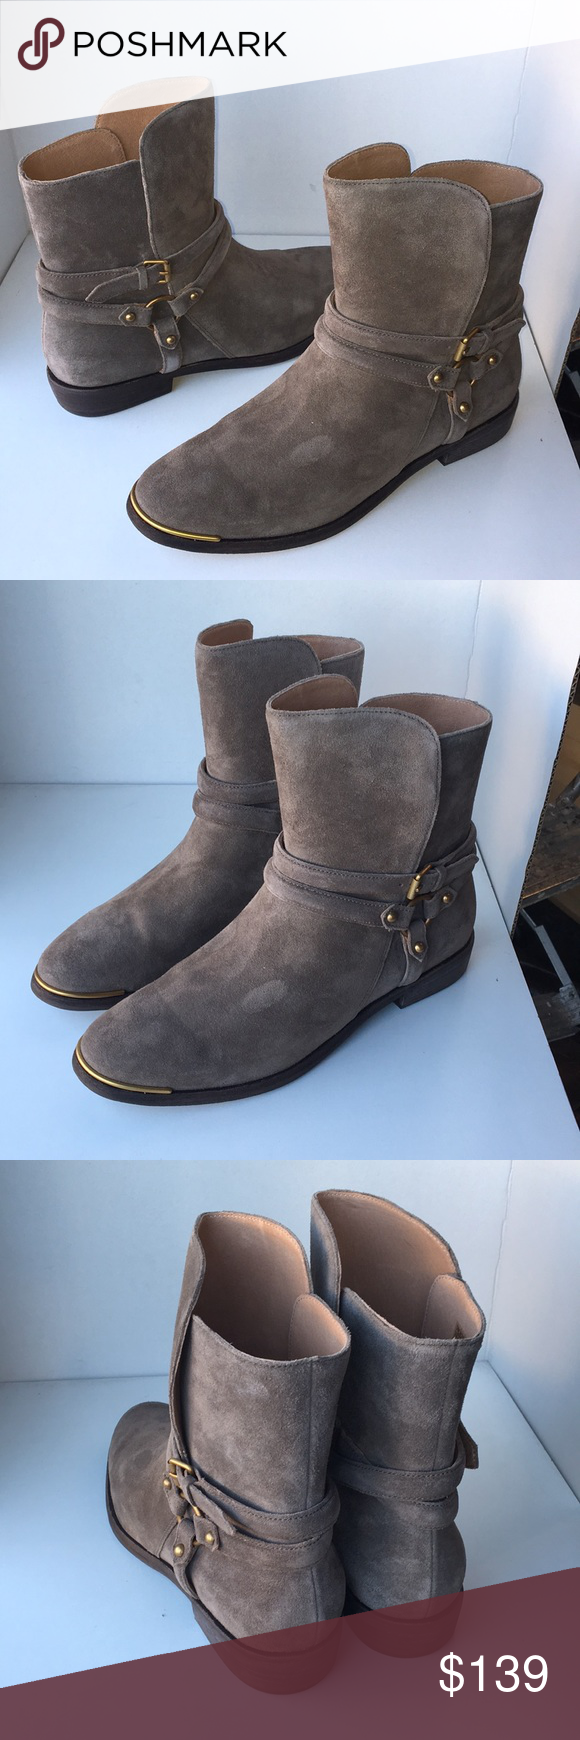 a51b13e08a3 ❤️New Ugg Kelby Ankle Bootie Boots color Mouse 10 NWT in 2019 | My ...